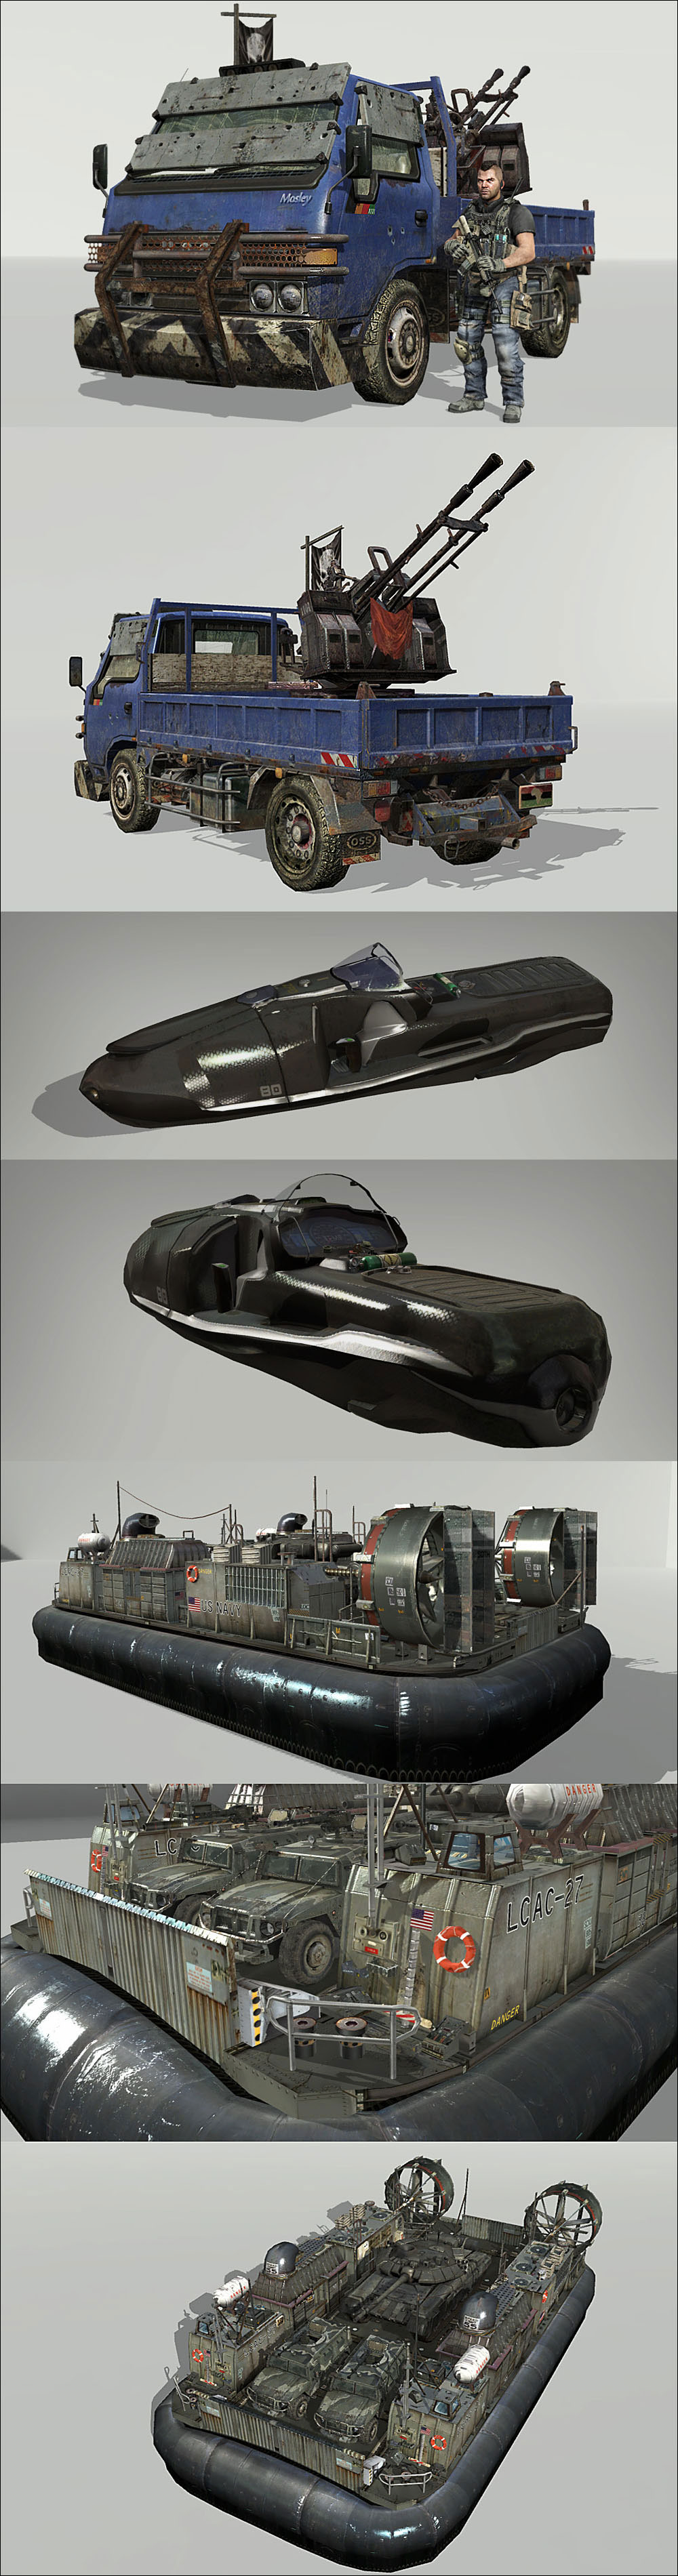 Call Of Duty : Modern Warfare 3 vehicle